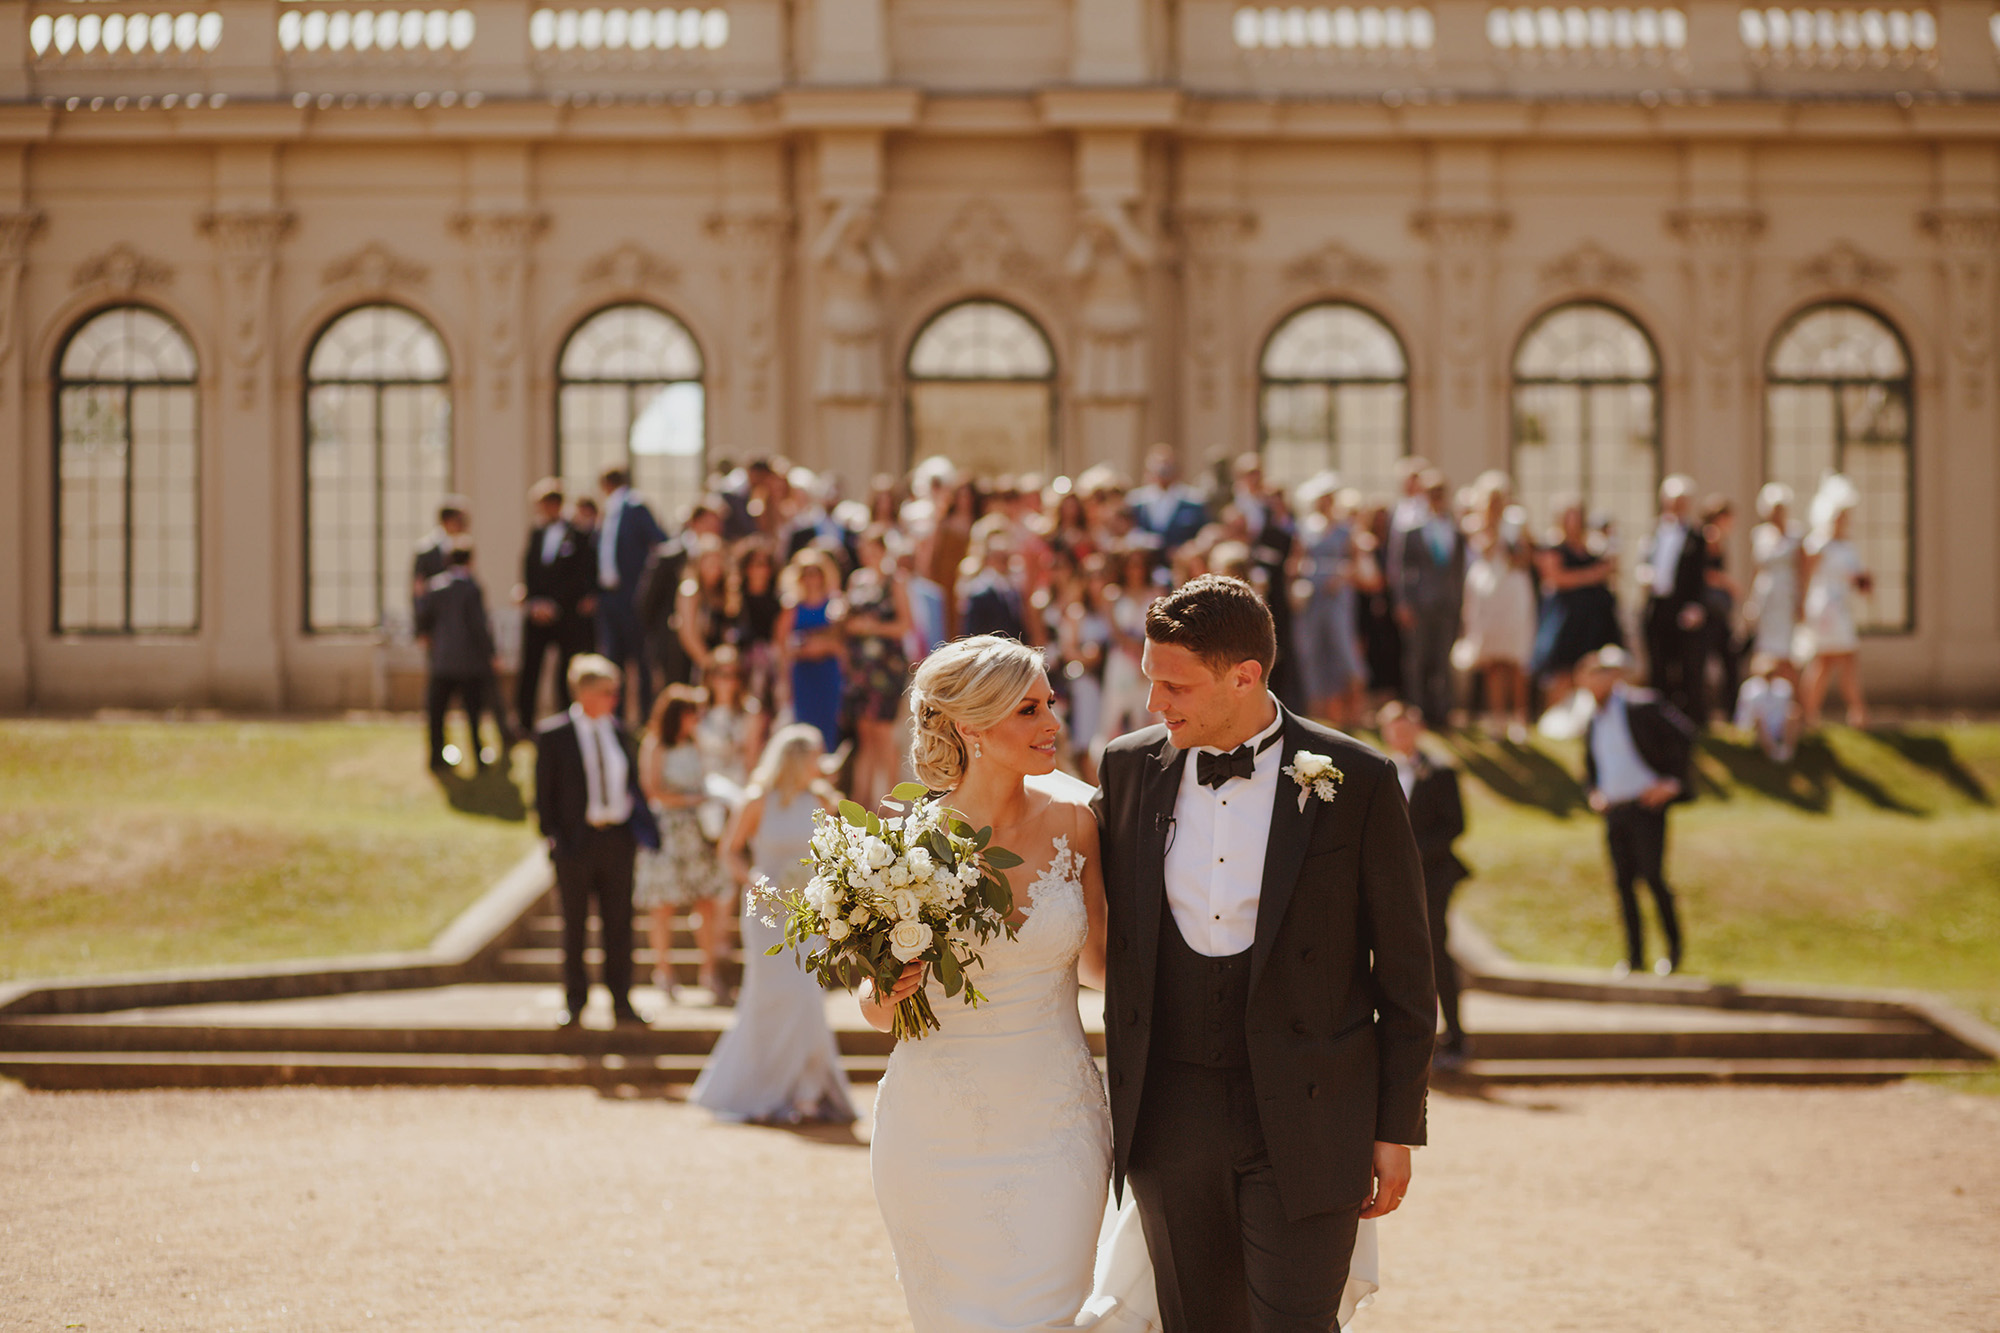 Wrest Park front entrance, Bedfordshire England, photo of couple leaving ceremony by Motiejus